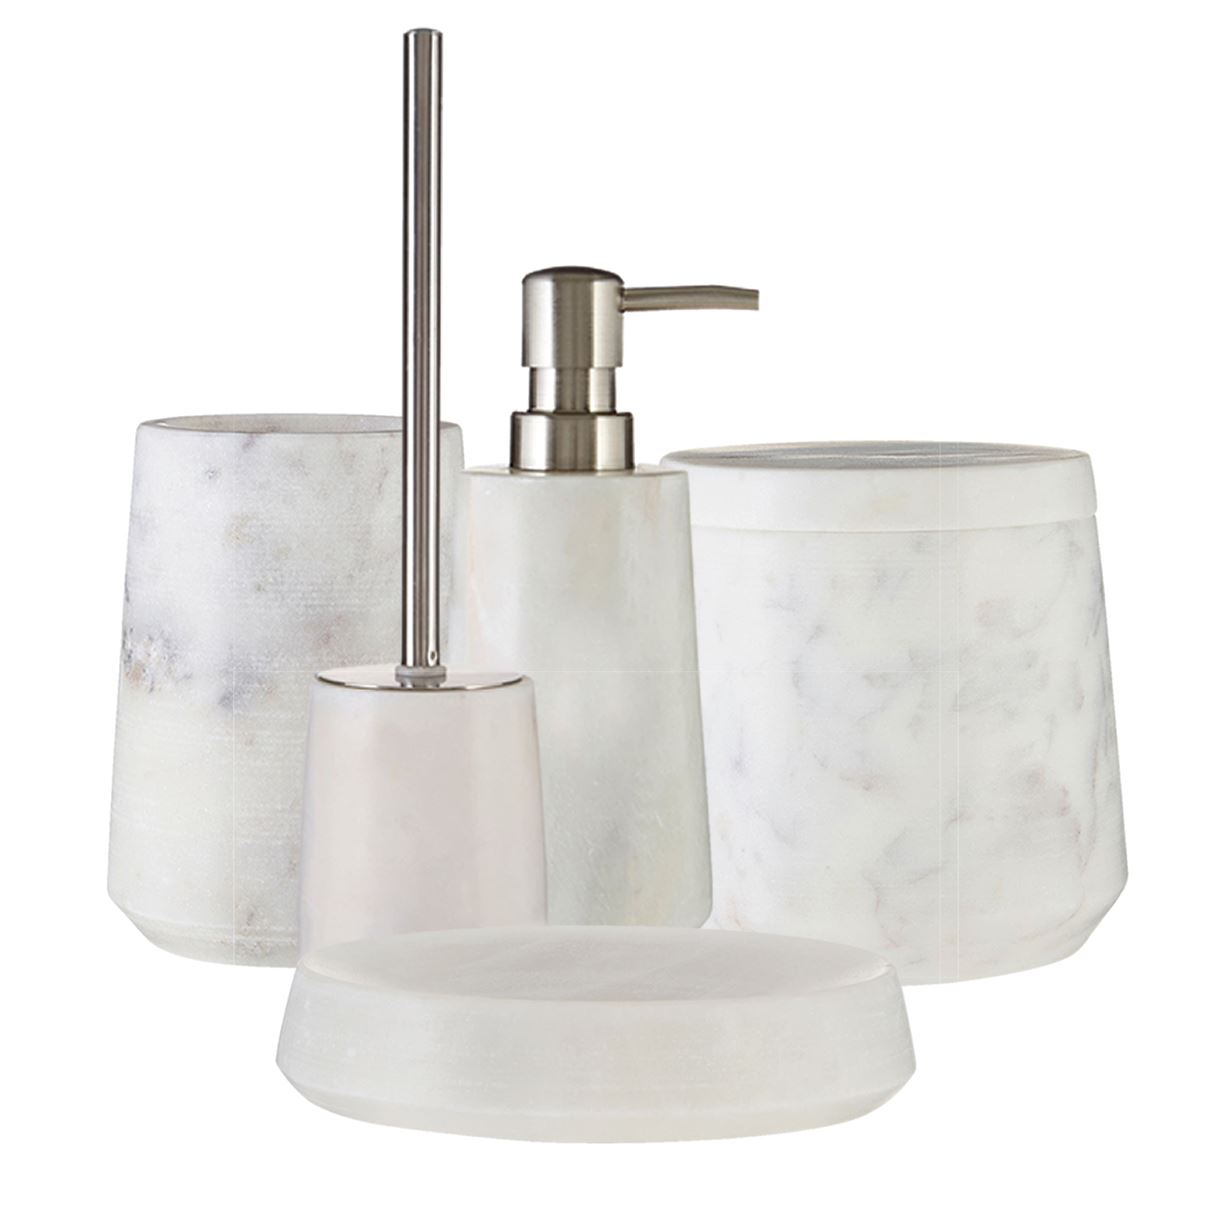 Salle De Bain En Espagnol Traduction ~ 5 piece off white marble soap dish tumbler cotton jar bathroom